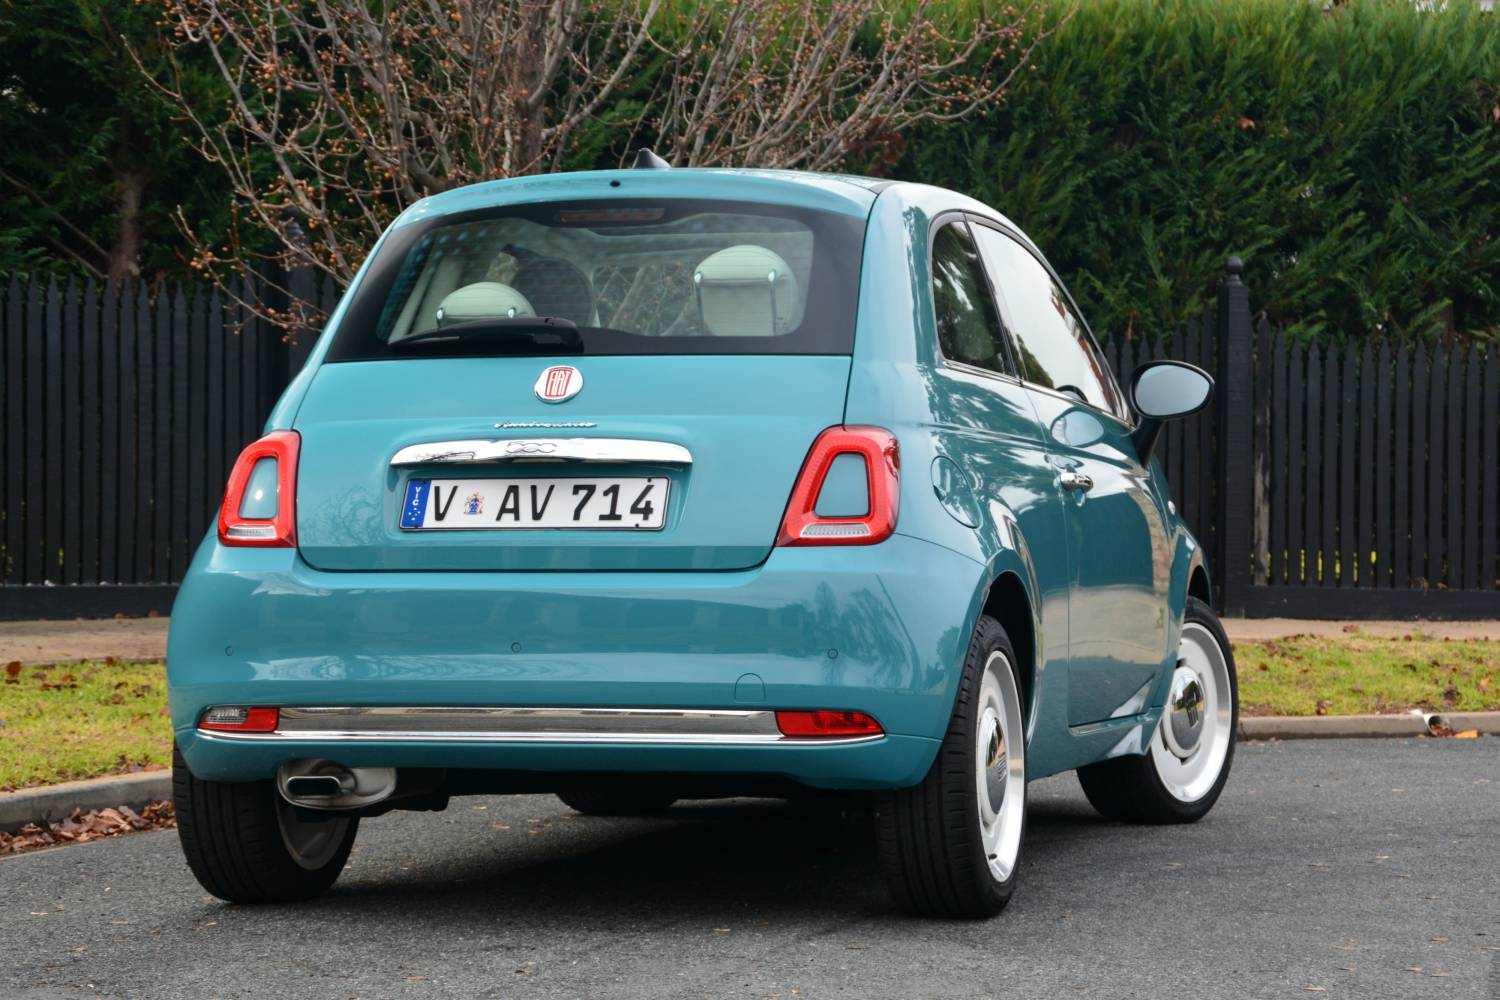 2018 Fiat 500 Review - CarConversation | Independent car reviews